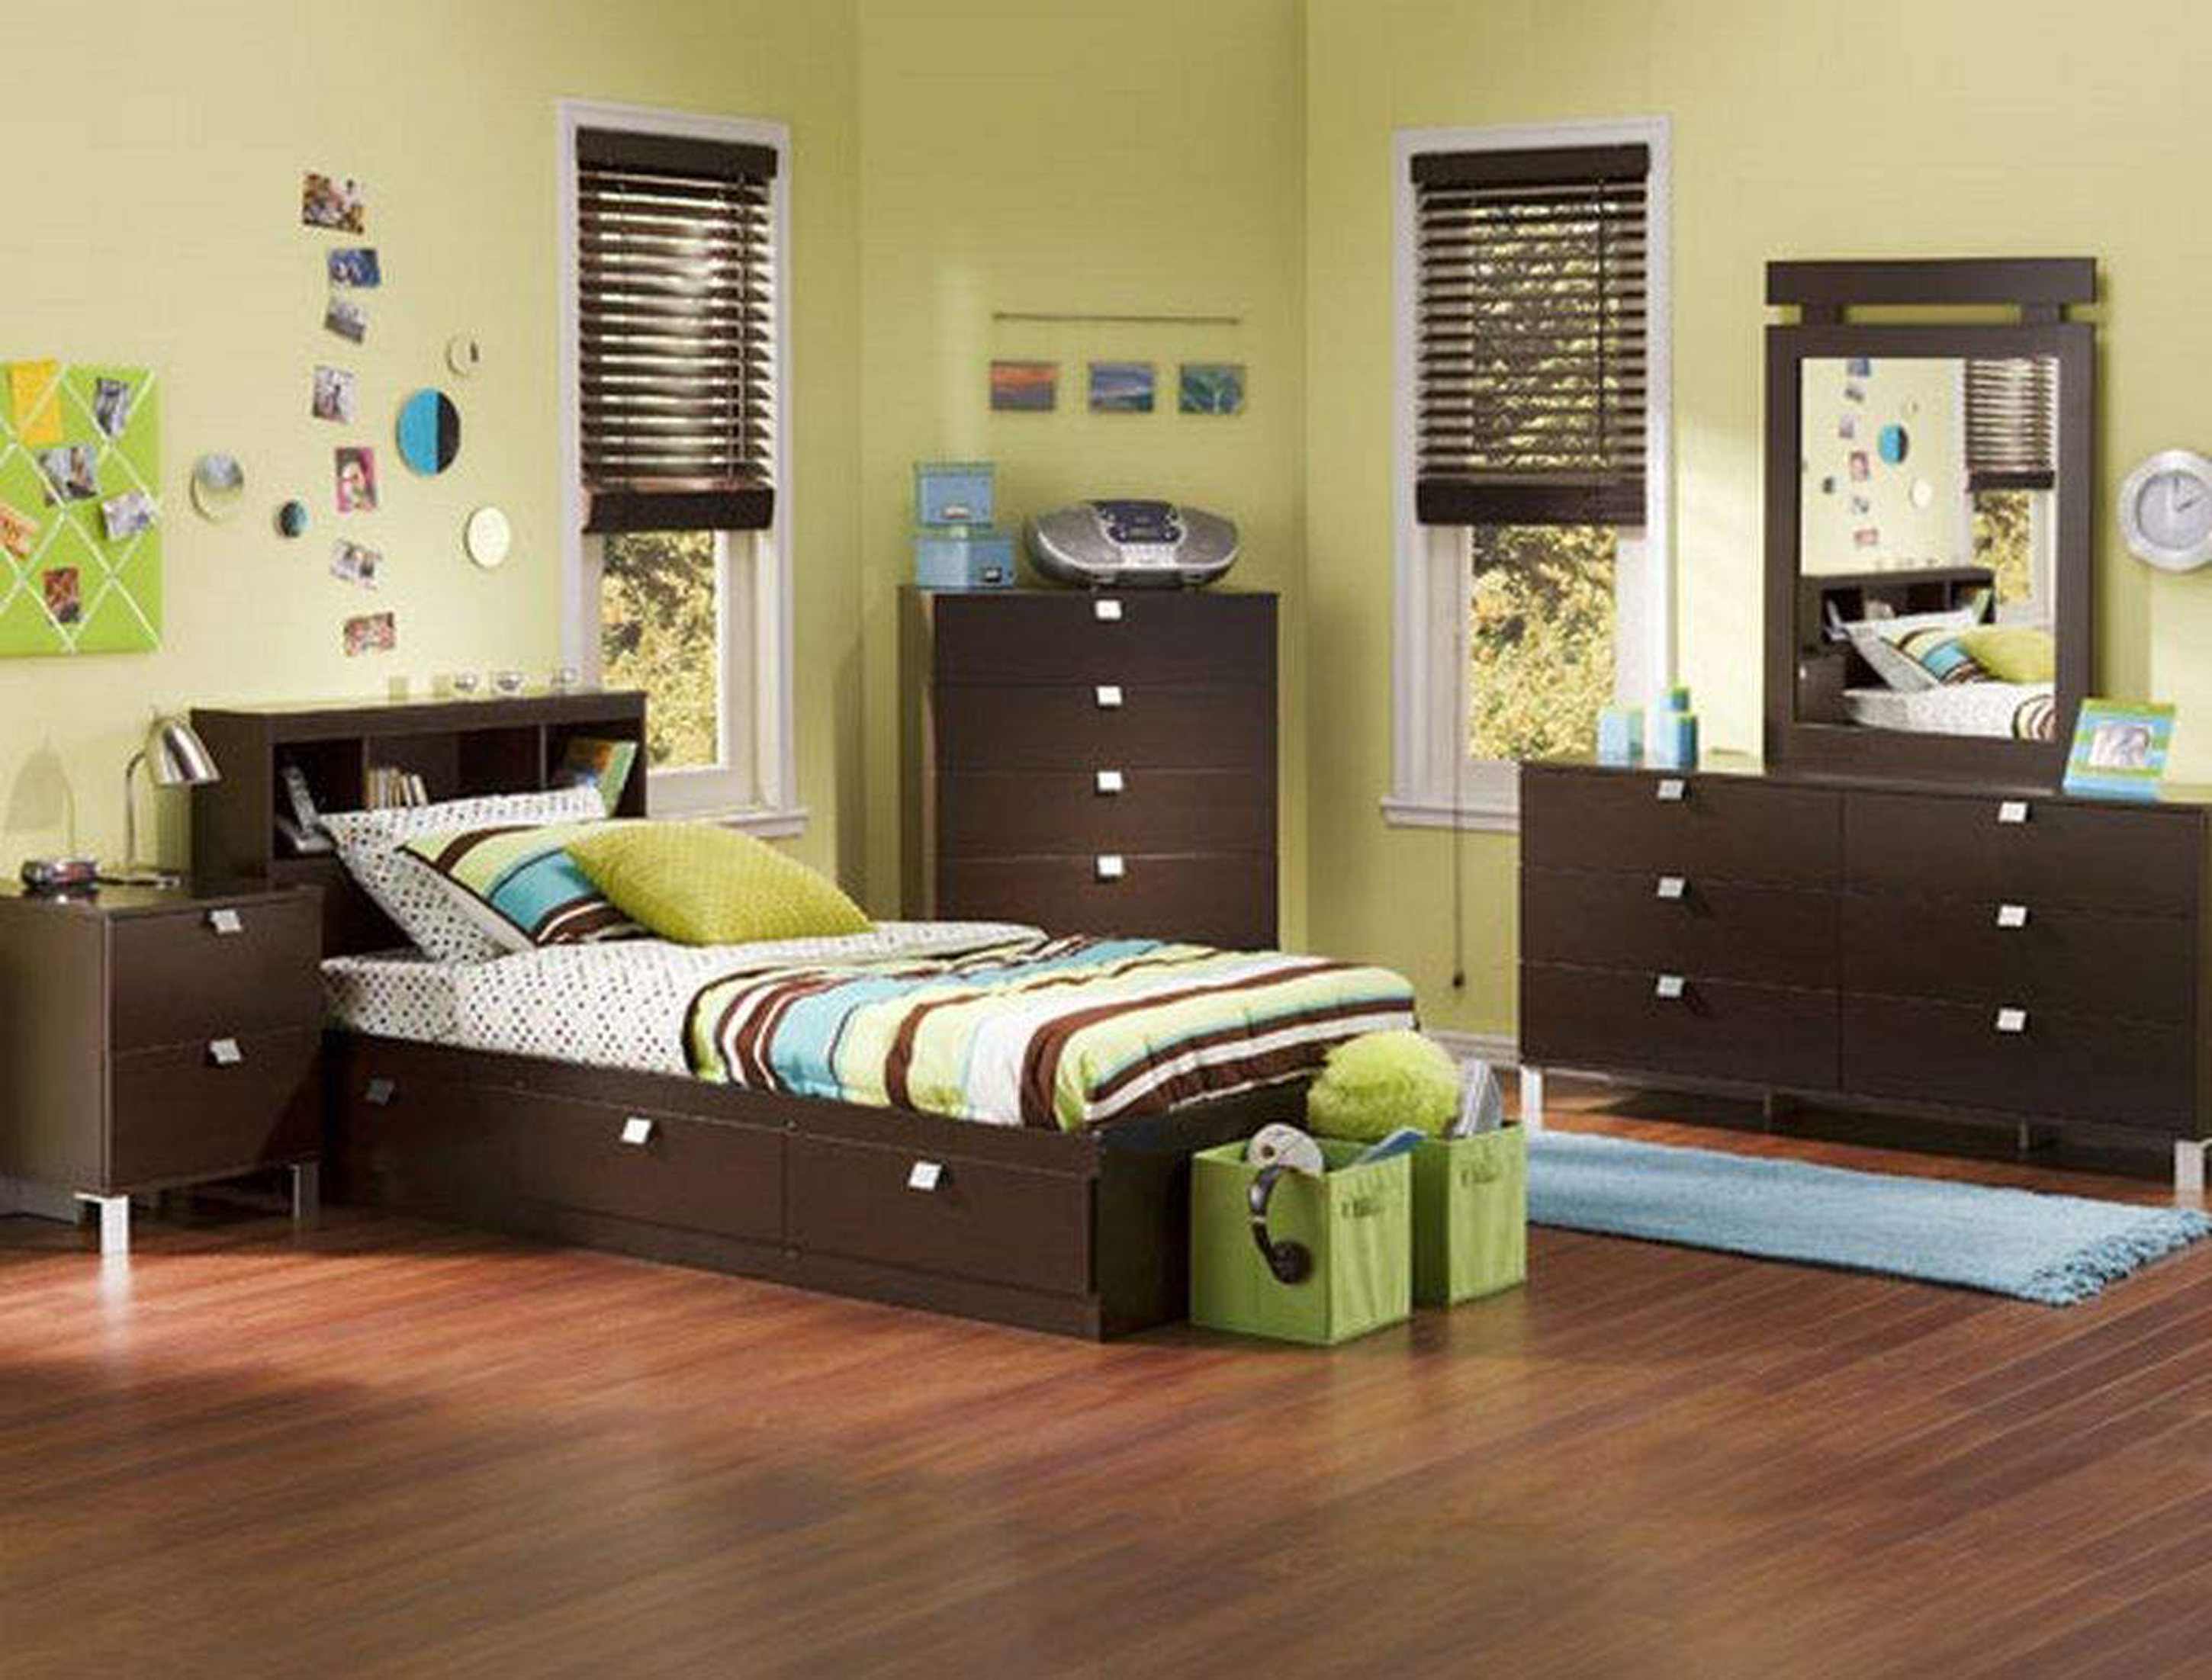 Kids Bedroom Impressive Boys Bedroom Decoration Idea With Chocolate Furniture Light Green Wall And Light Blue Rug Impressive Boys Bedroom Decoration Ideas (Image 17 of 28)